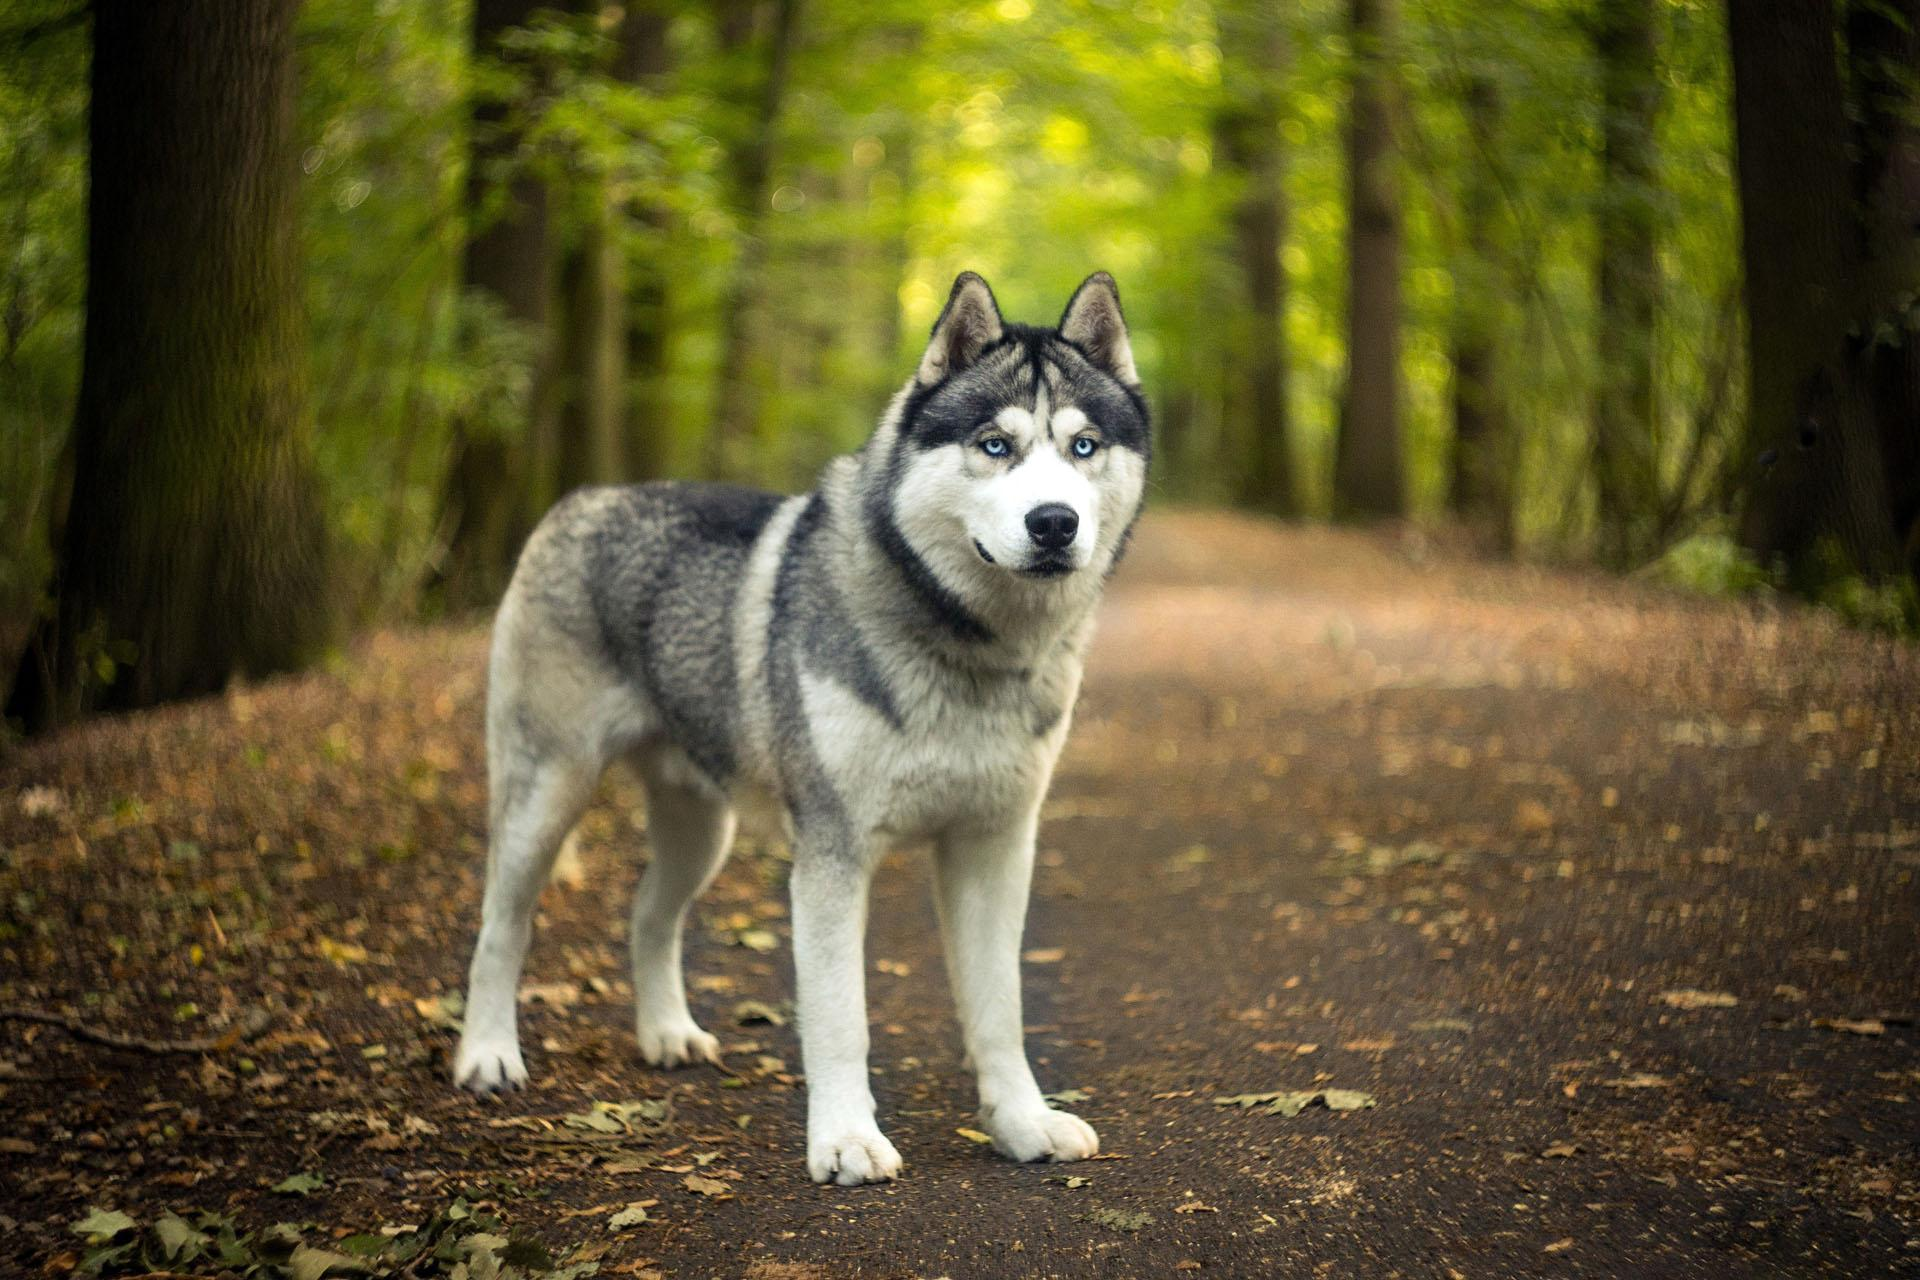 Husky Dog Wallpaper Hd Backgrounds Themes For Android Apk Download